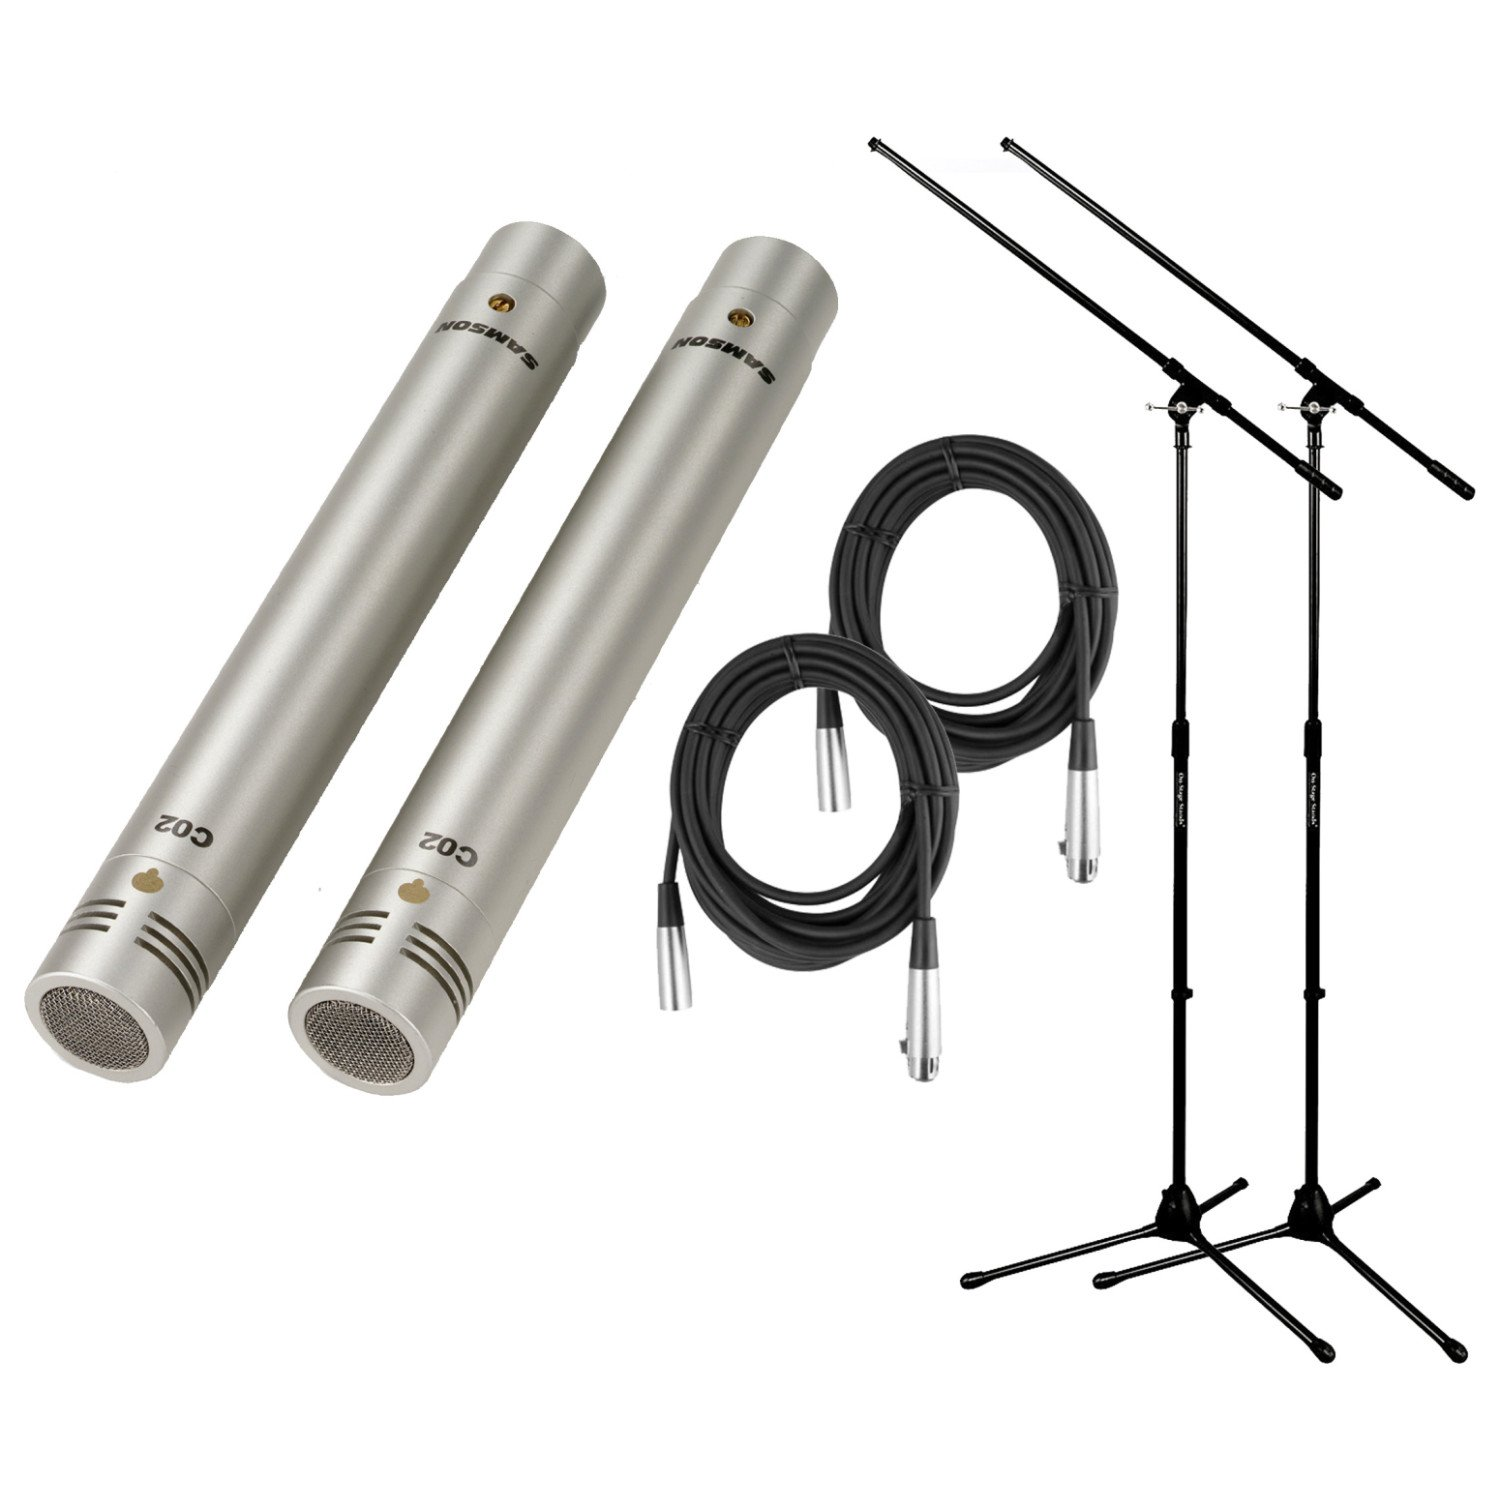 Samson C02 Pencil Condenser Microphone Pair Bundle w/Case, 2 20' XLR Mic Cables, and 2 Boom Stands